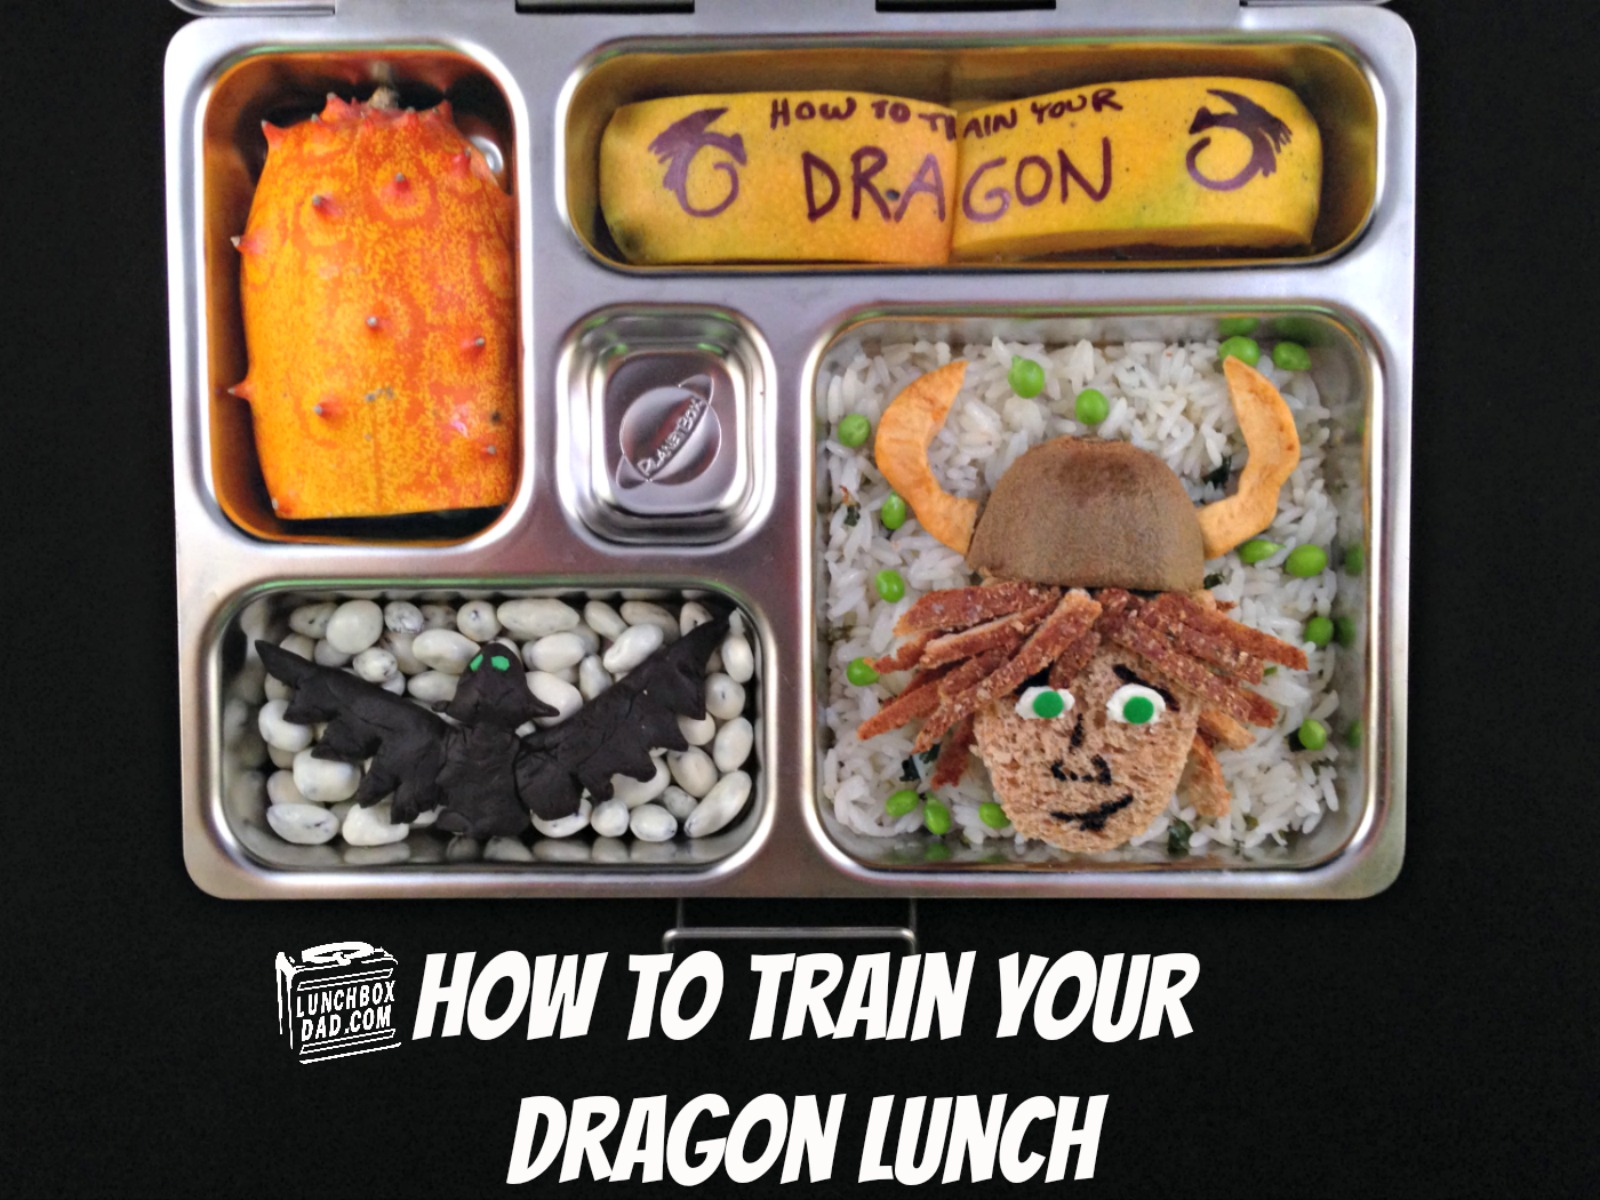 How to Train Your Dragon Lunch